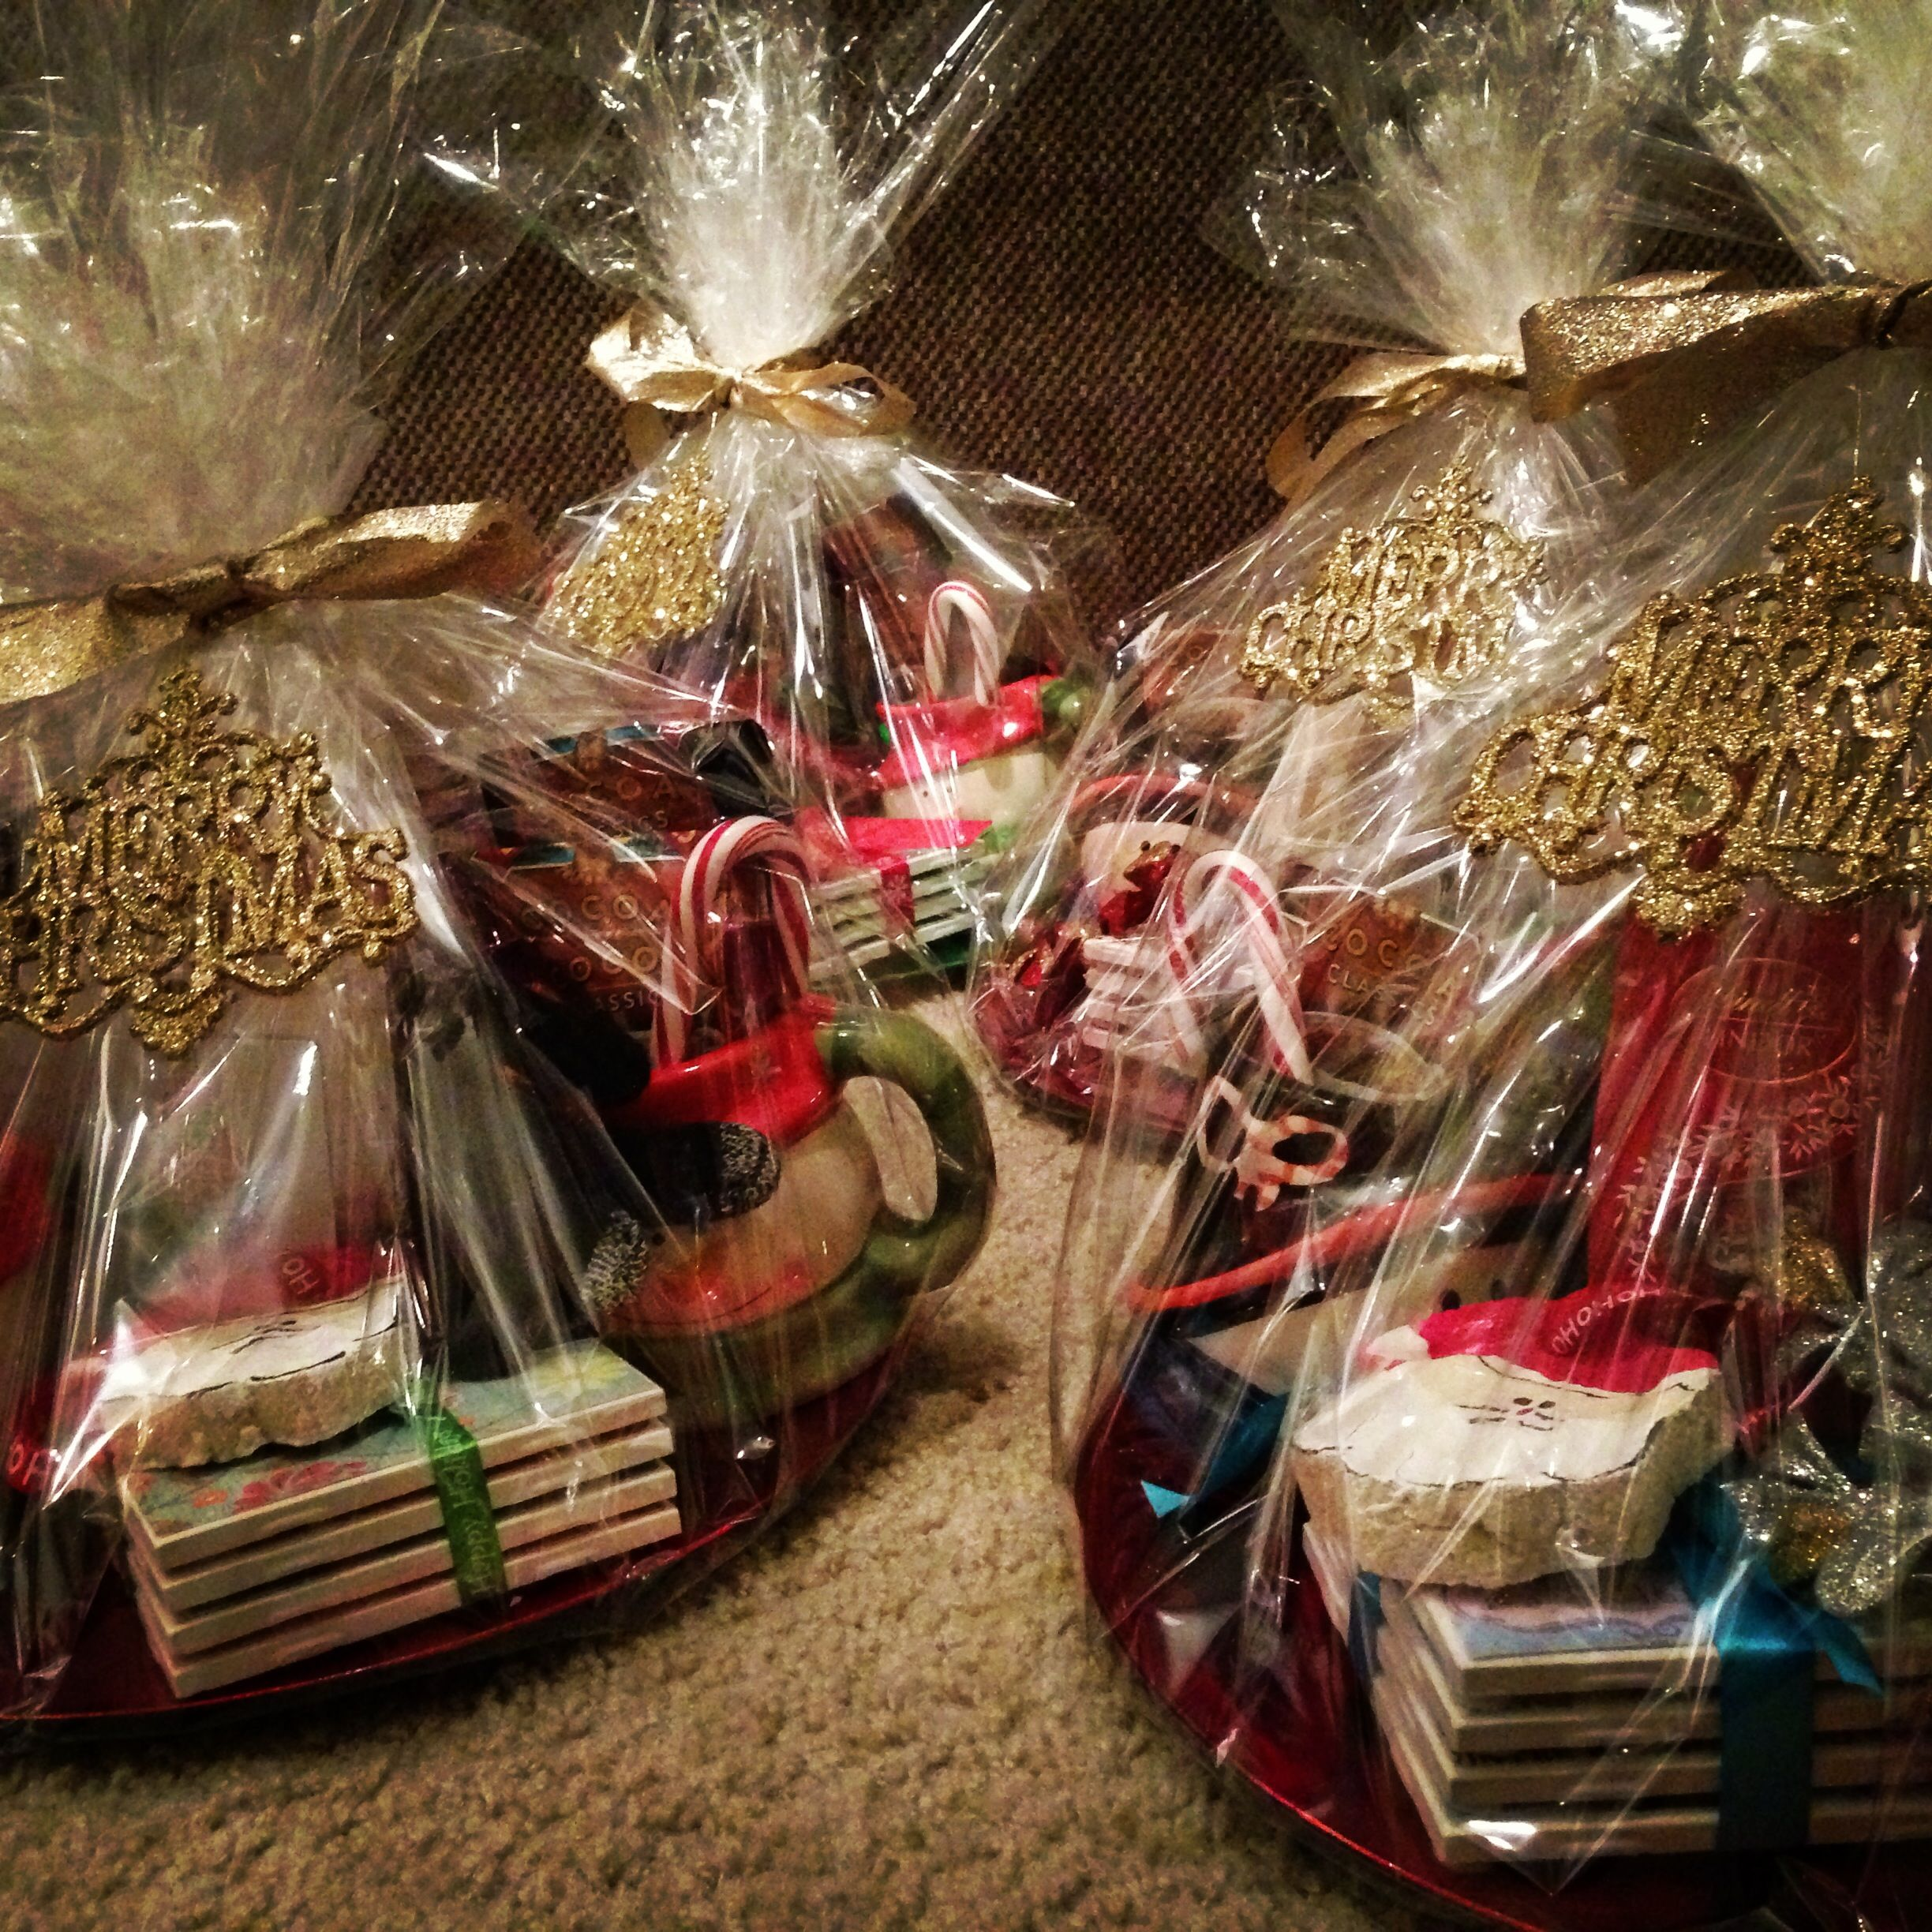 Christmas Gifts For The Inlaws